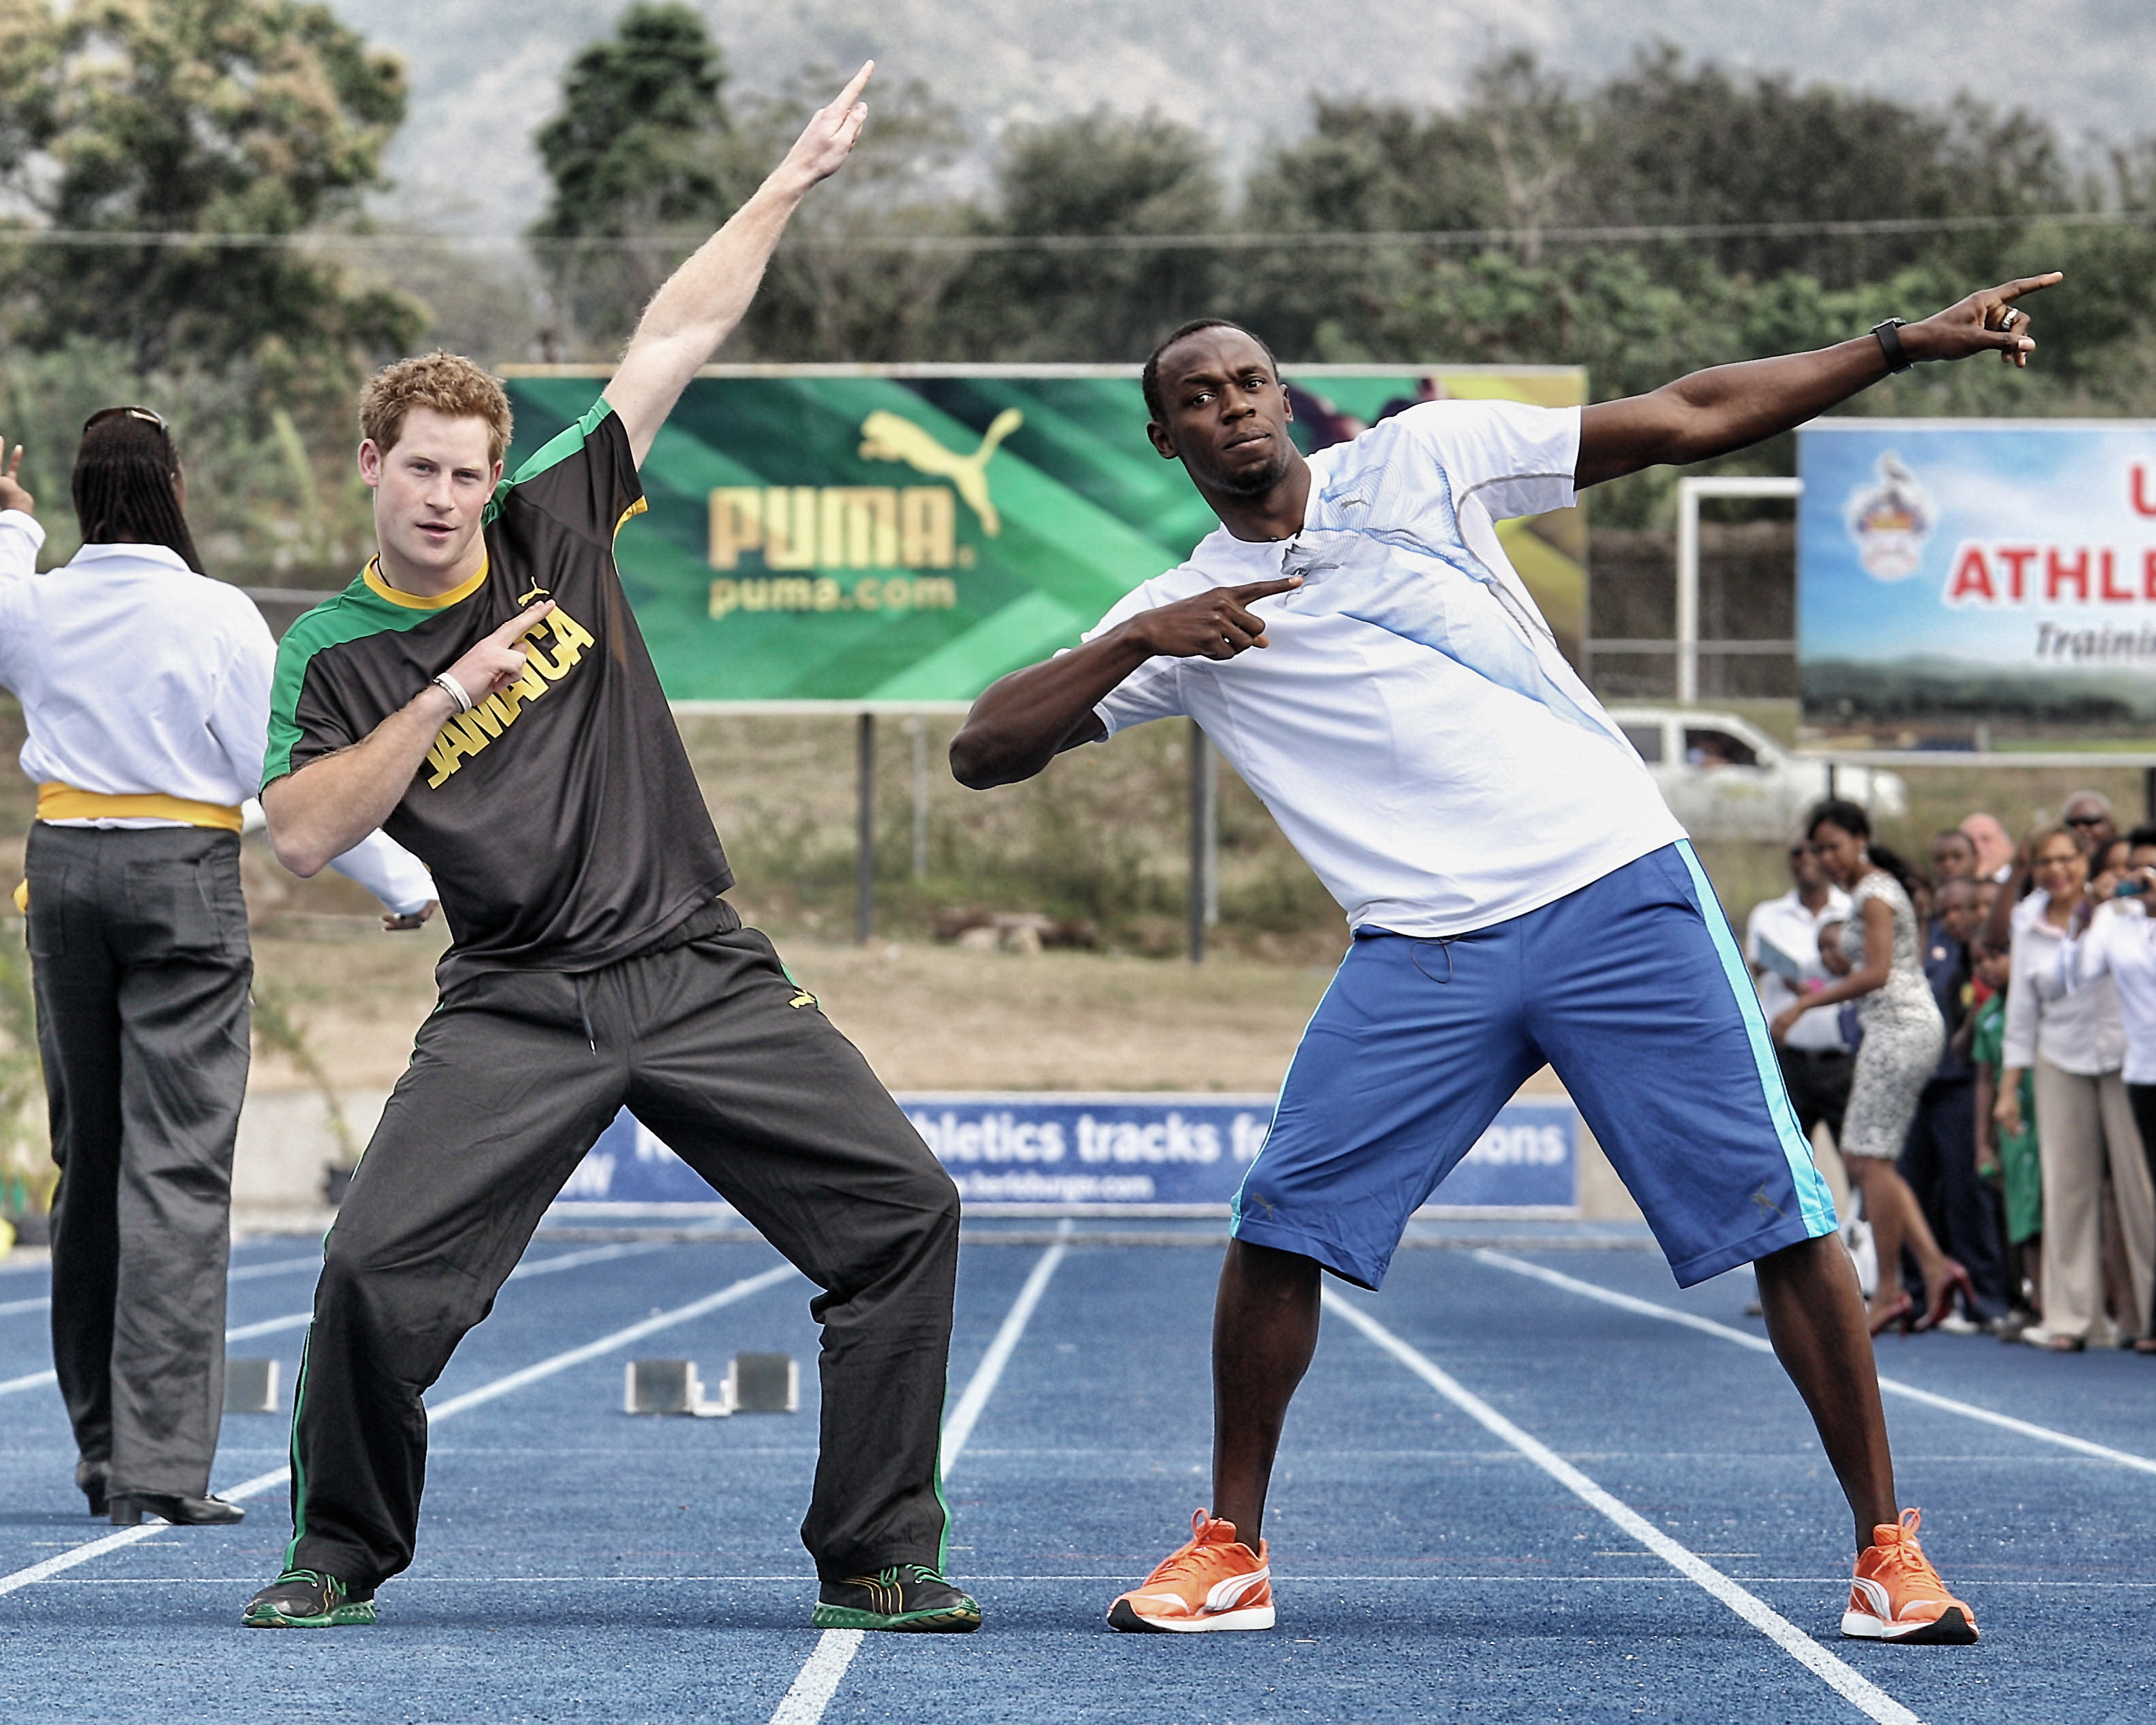 Prince Harry races Usain Bolt at the Usain Bolt Track at the University of the West Indies in Kingston, Jamaica on March 6, 2012.